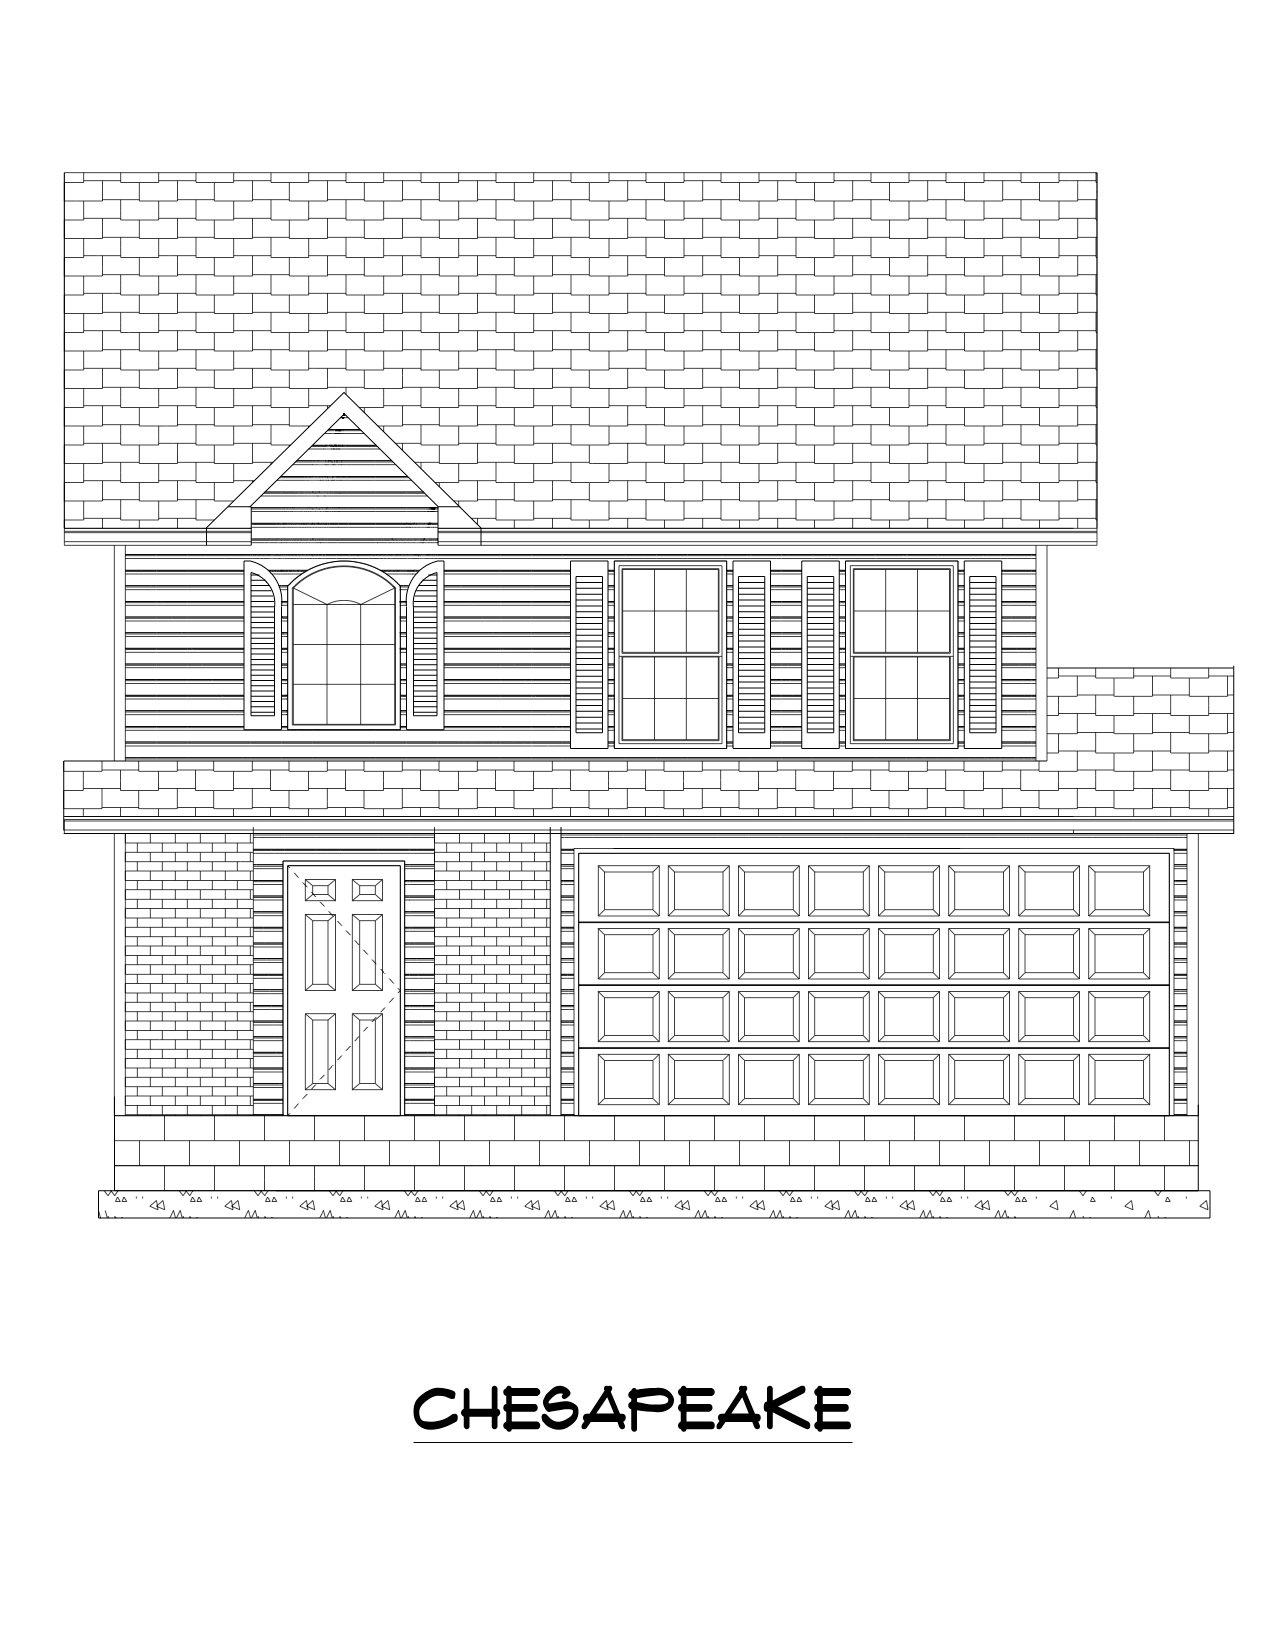 New%20Construction%20/%20Elkhorn%20Creek%20at%20the%20Colony%20offered%20for%20the%20first%20time!%20%20The%20Chesapeake%20is%20a%20popular%20two-story%20plan%20offering%203%20bedrooms,%202%20bathrooms%20and%20a%20laundry%20room%20all%20on%20the%20second%20floor.%20%20A%20half%20bath%20is%20located%20on%20the%20first%20floor,%20off%20the%20entryway.%20%20The%20open%20floor%20plan%20includes%20a%20large%20family%20room%20that%20opens%20to%20the%20breakfast%20area%20and%20kitchen%20that%20overlooks%20the%20back%20patio%20and%20back%20yard.%20%20The%20kitchen%20includes%20all%20wood%20cabinetry,%20dishwasher,%20stove-top/oven%20and%20disposal.